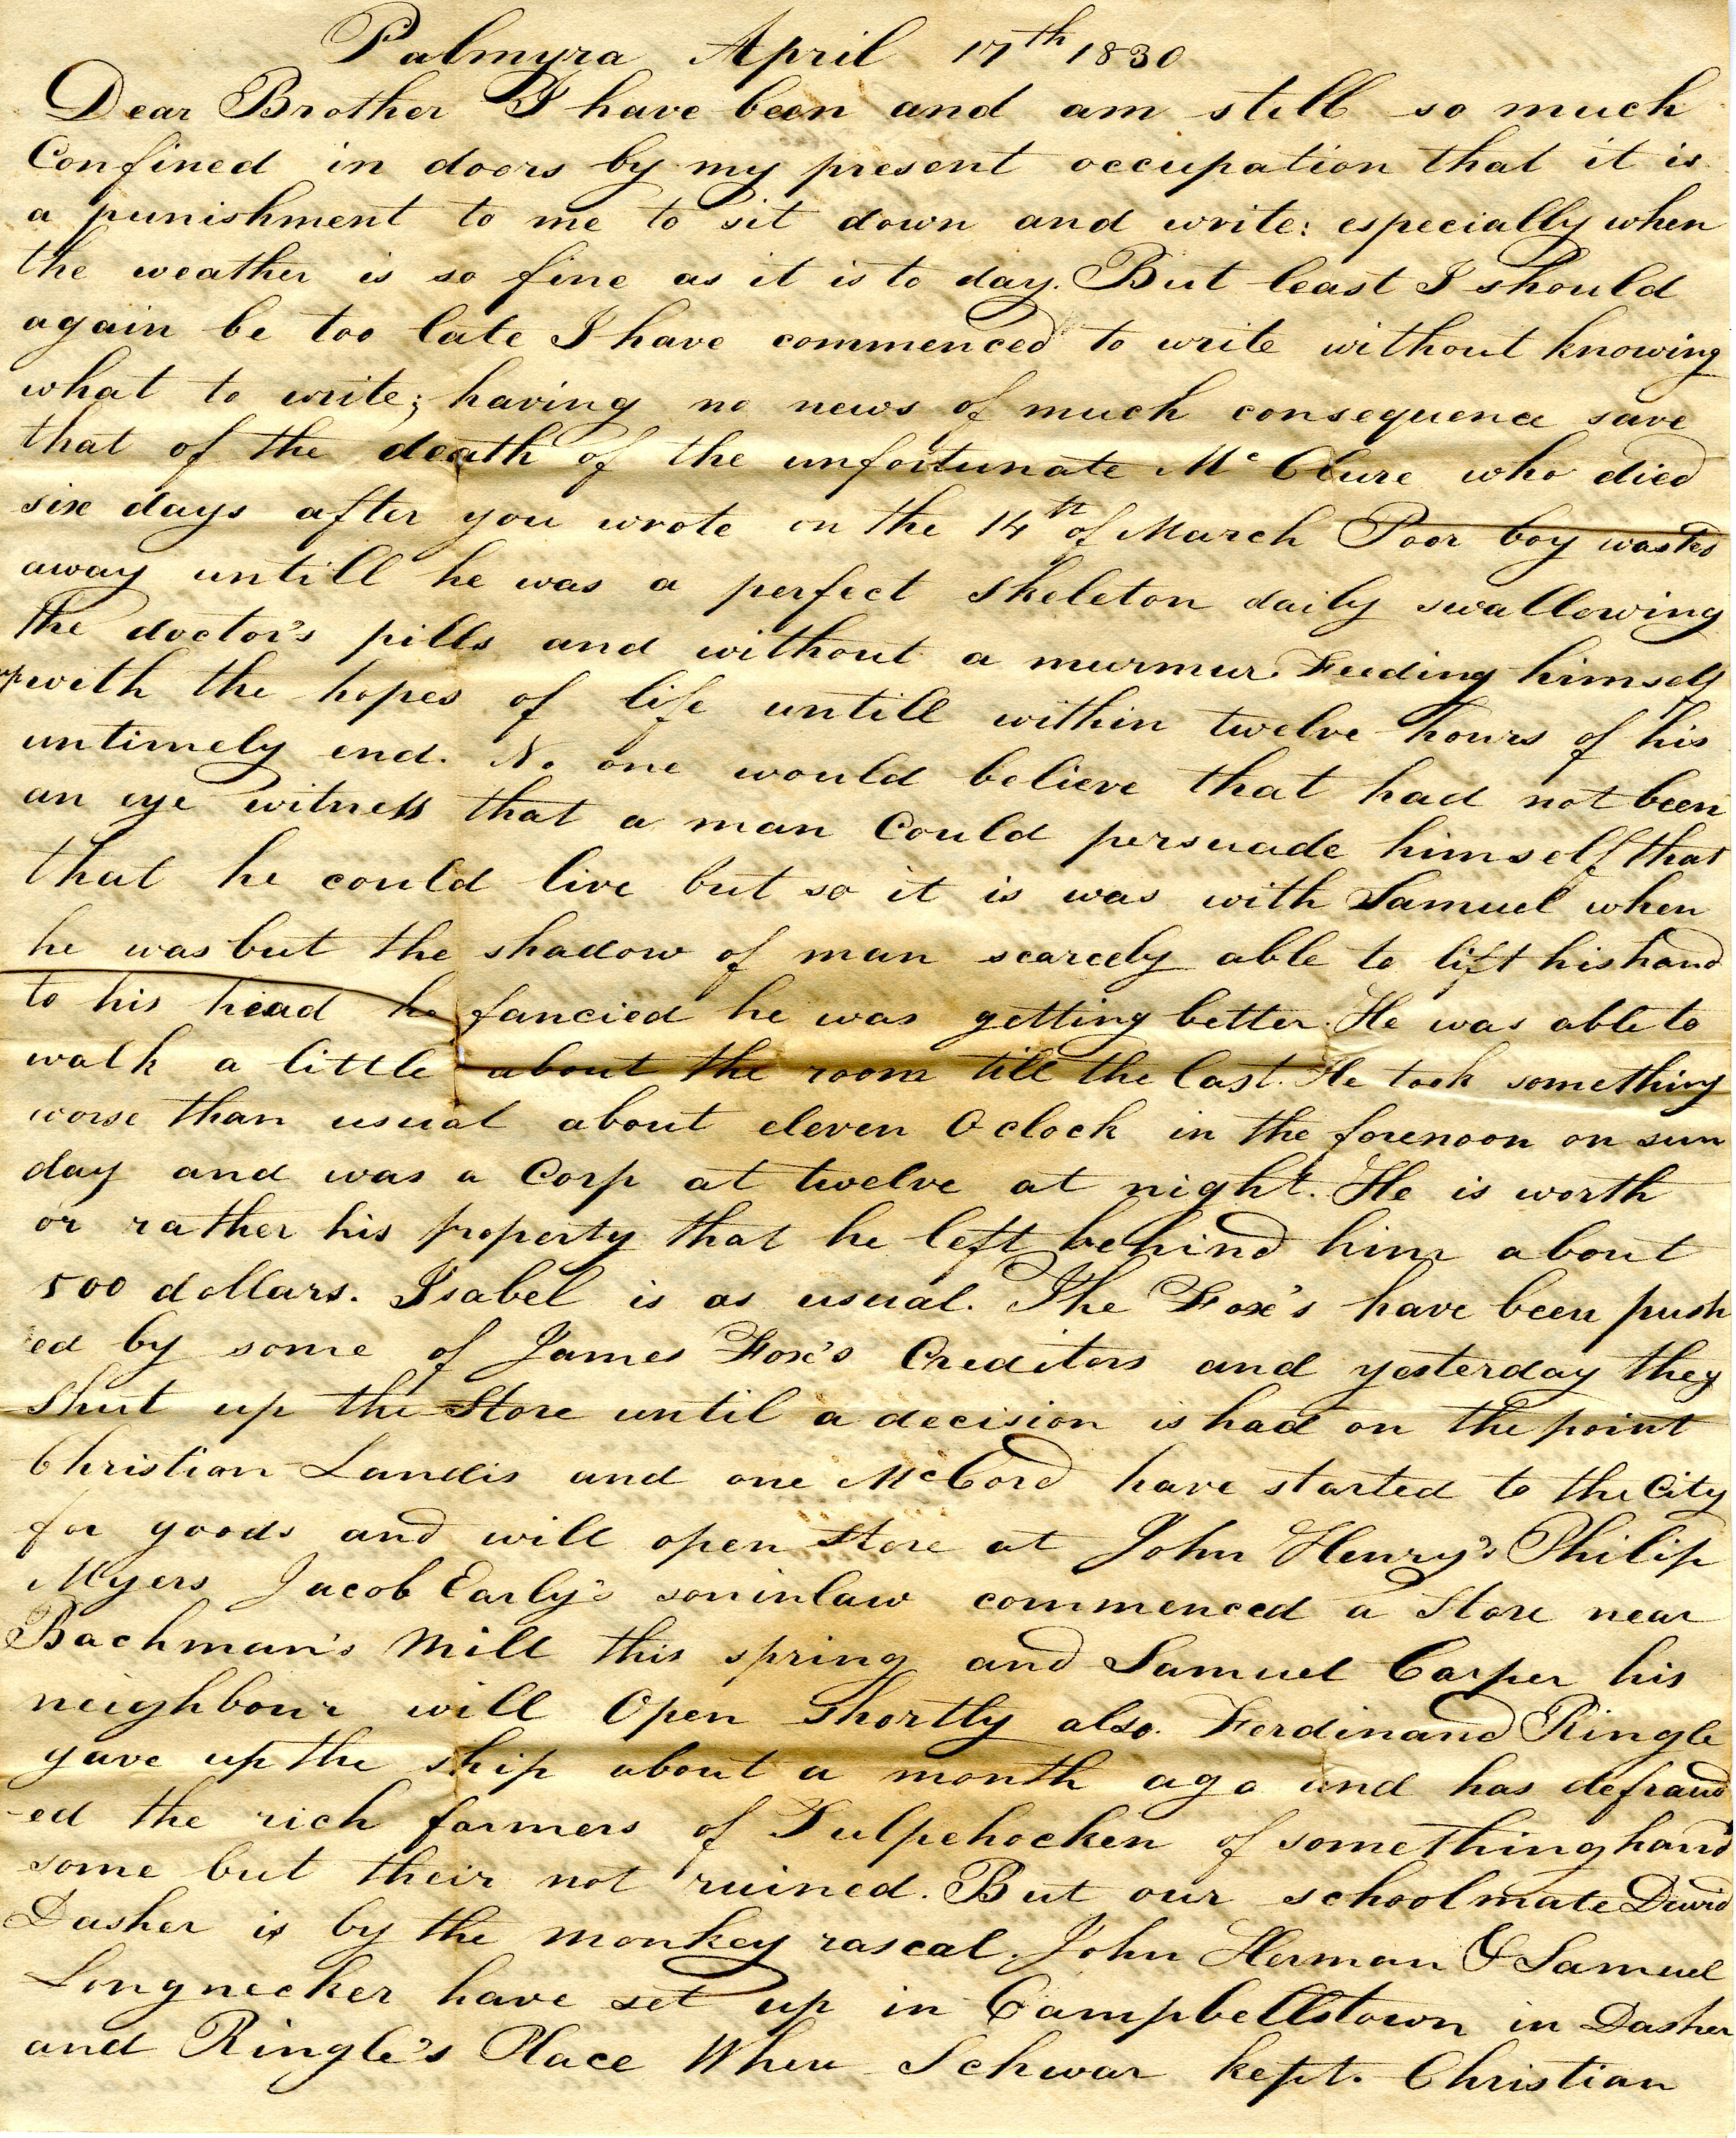 Letter From William Geddes to John Geddes, April 17, 1830 image